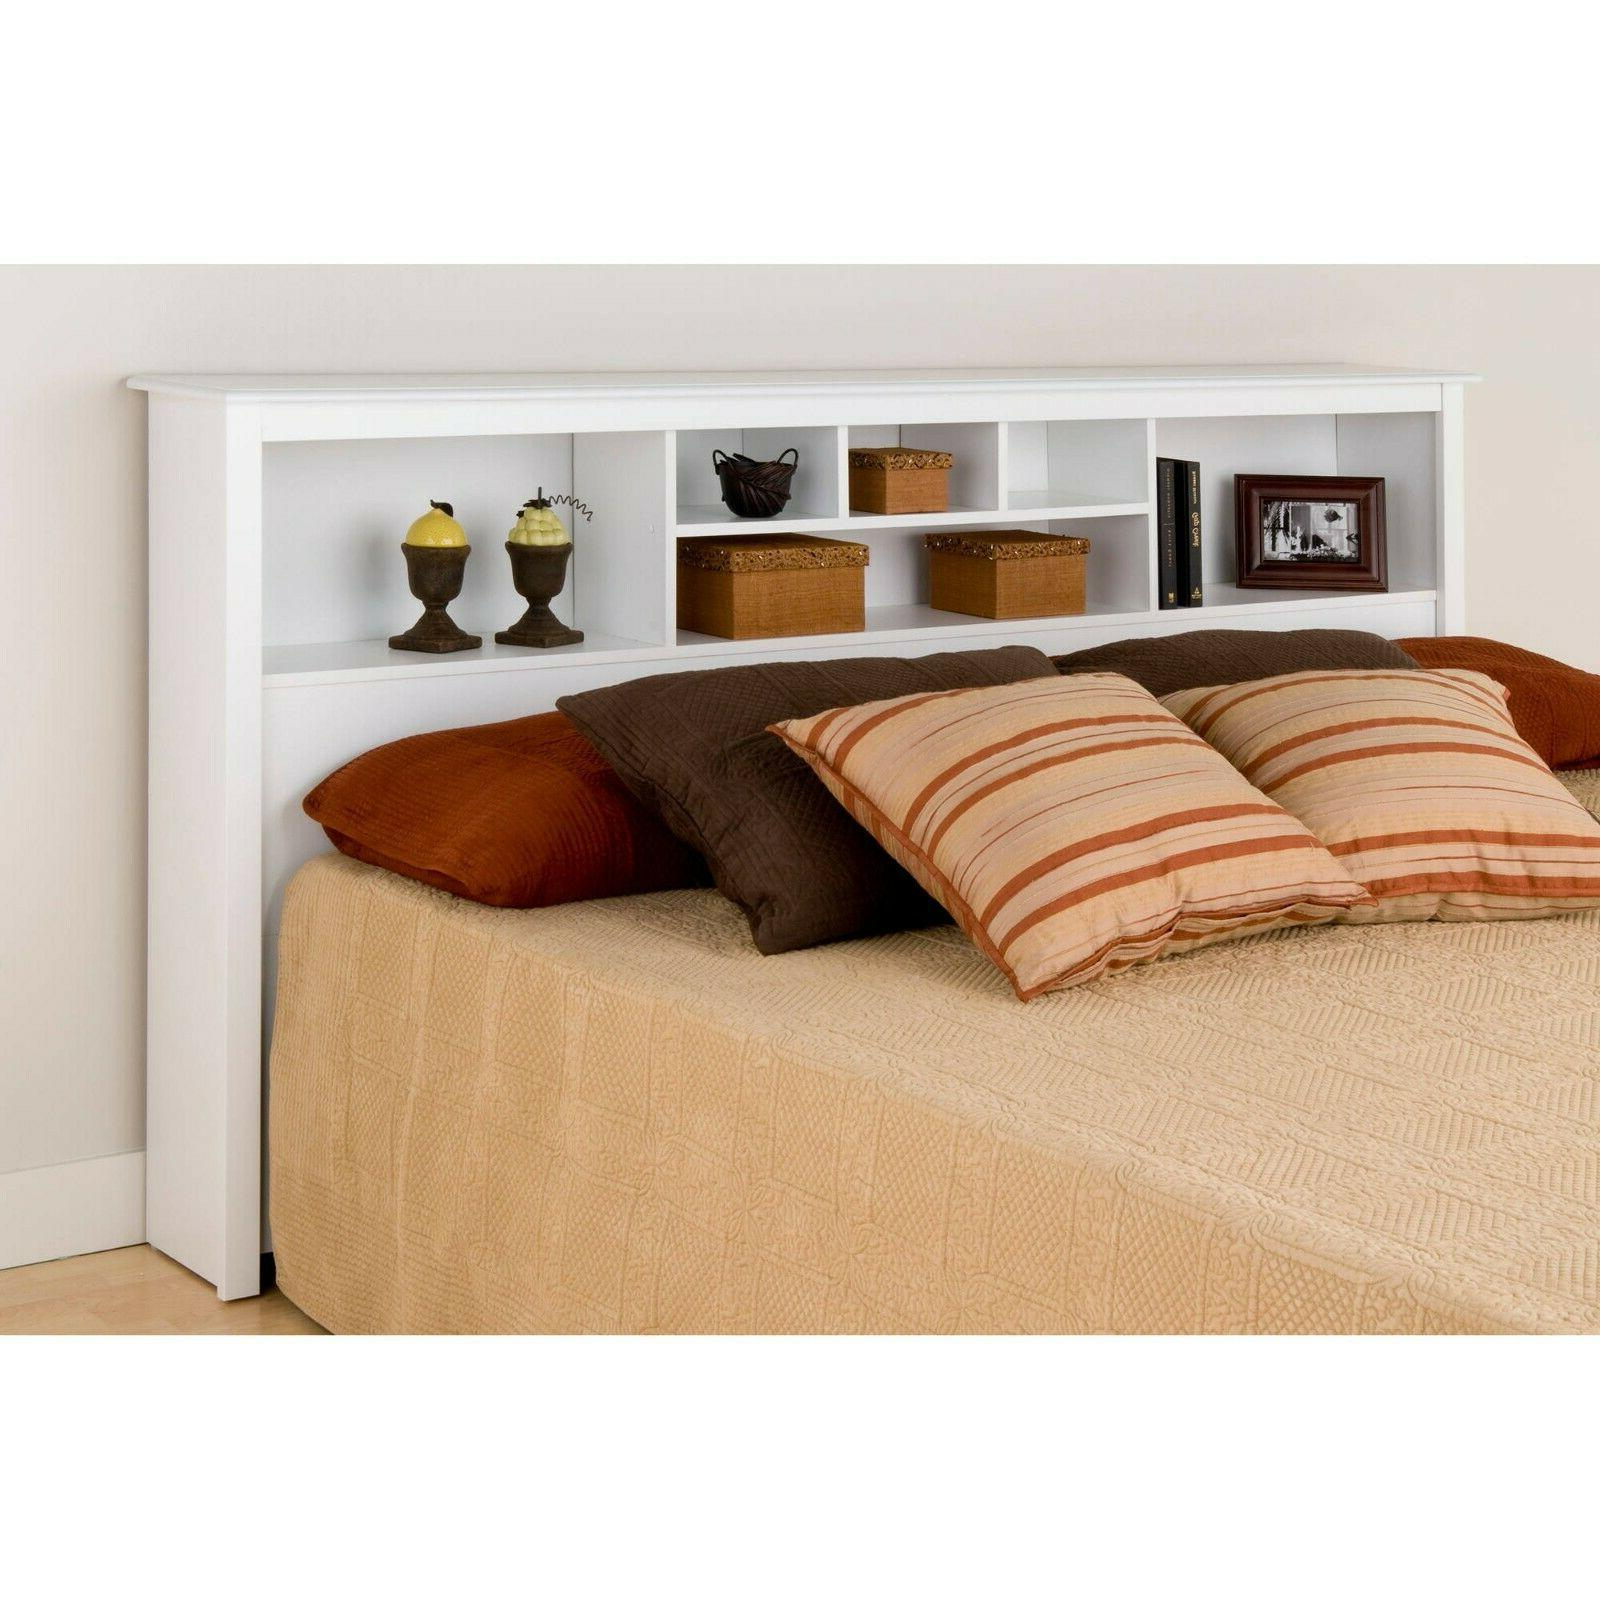 Modern KING Size White Bookcase Headboard Bed Bedroom Wood F